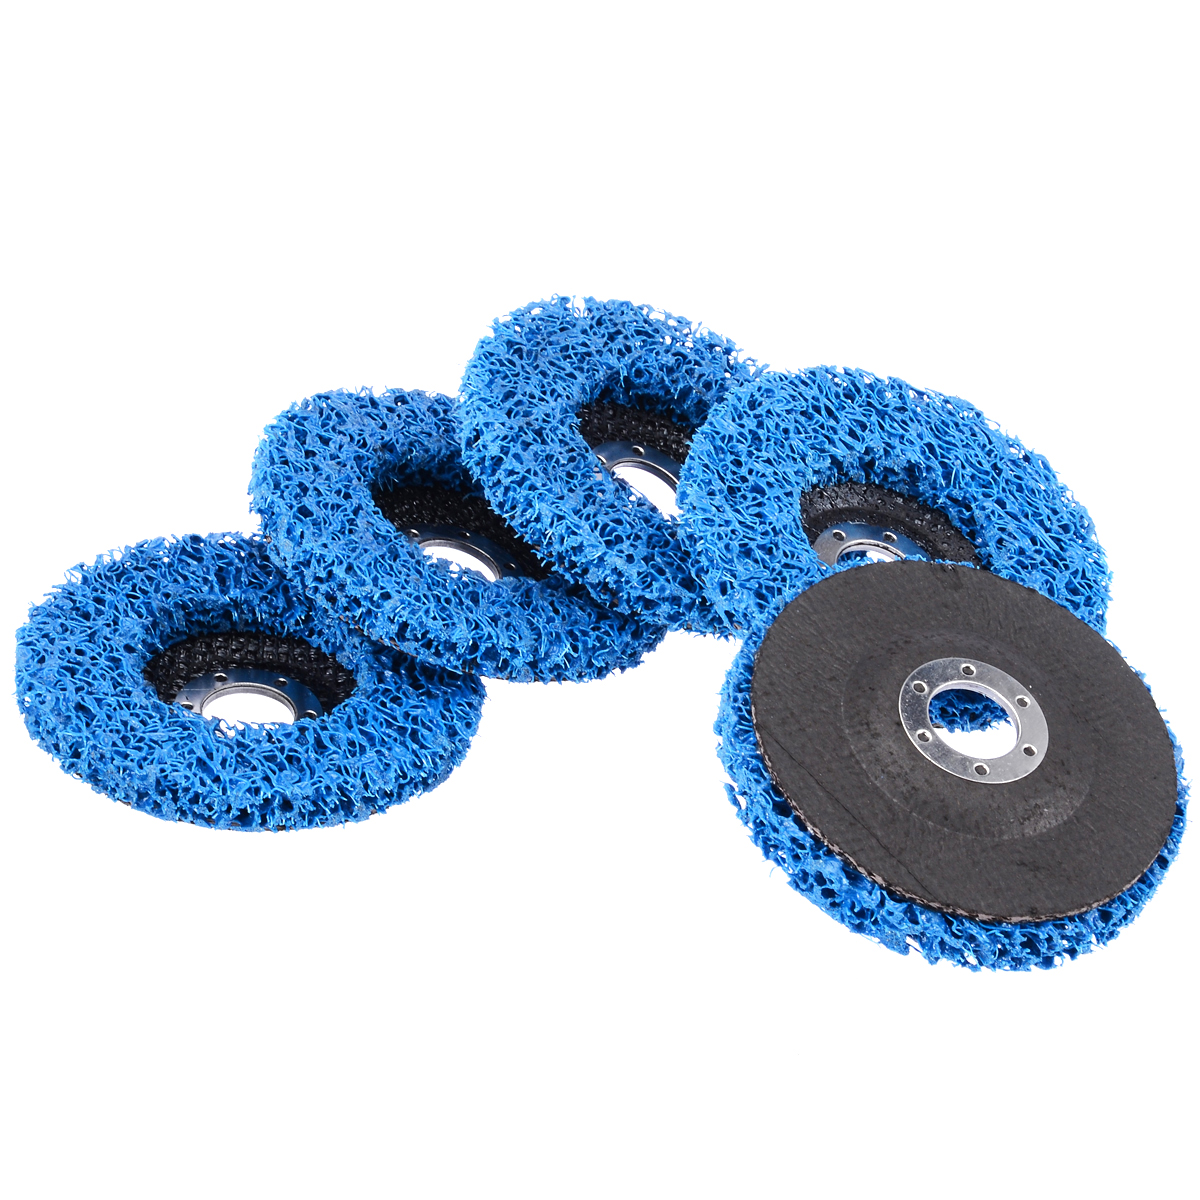 5Pcs 13mm Thisckness 115mm Blue Polishing Wheel Paint Rust Removal Clean Abrasive Discs For Angle Grinder